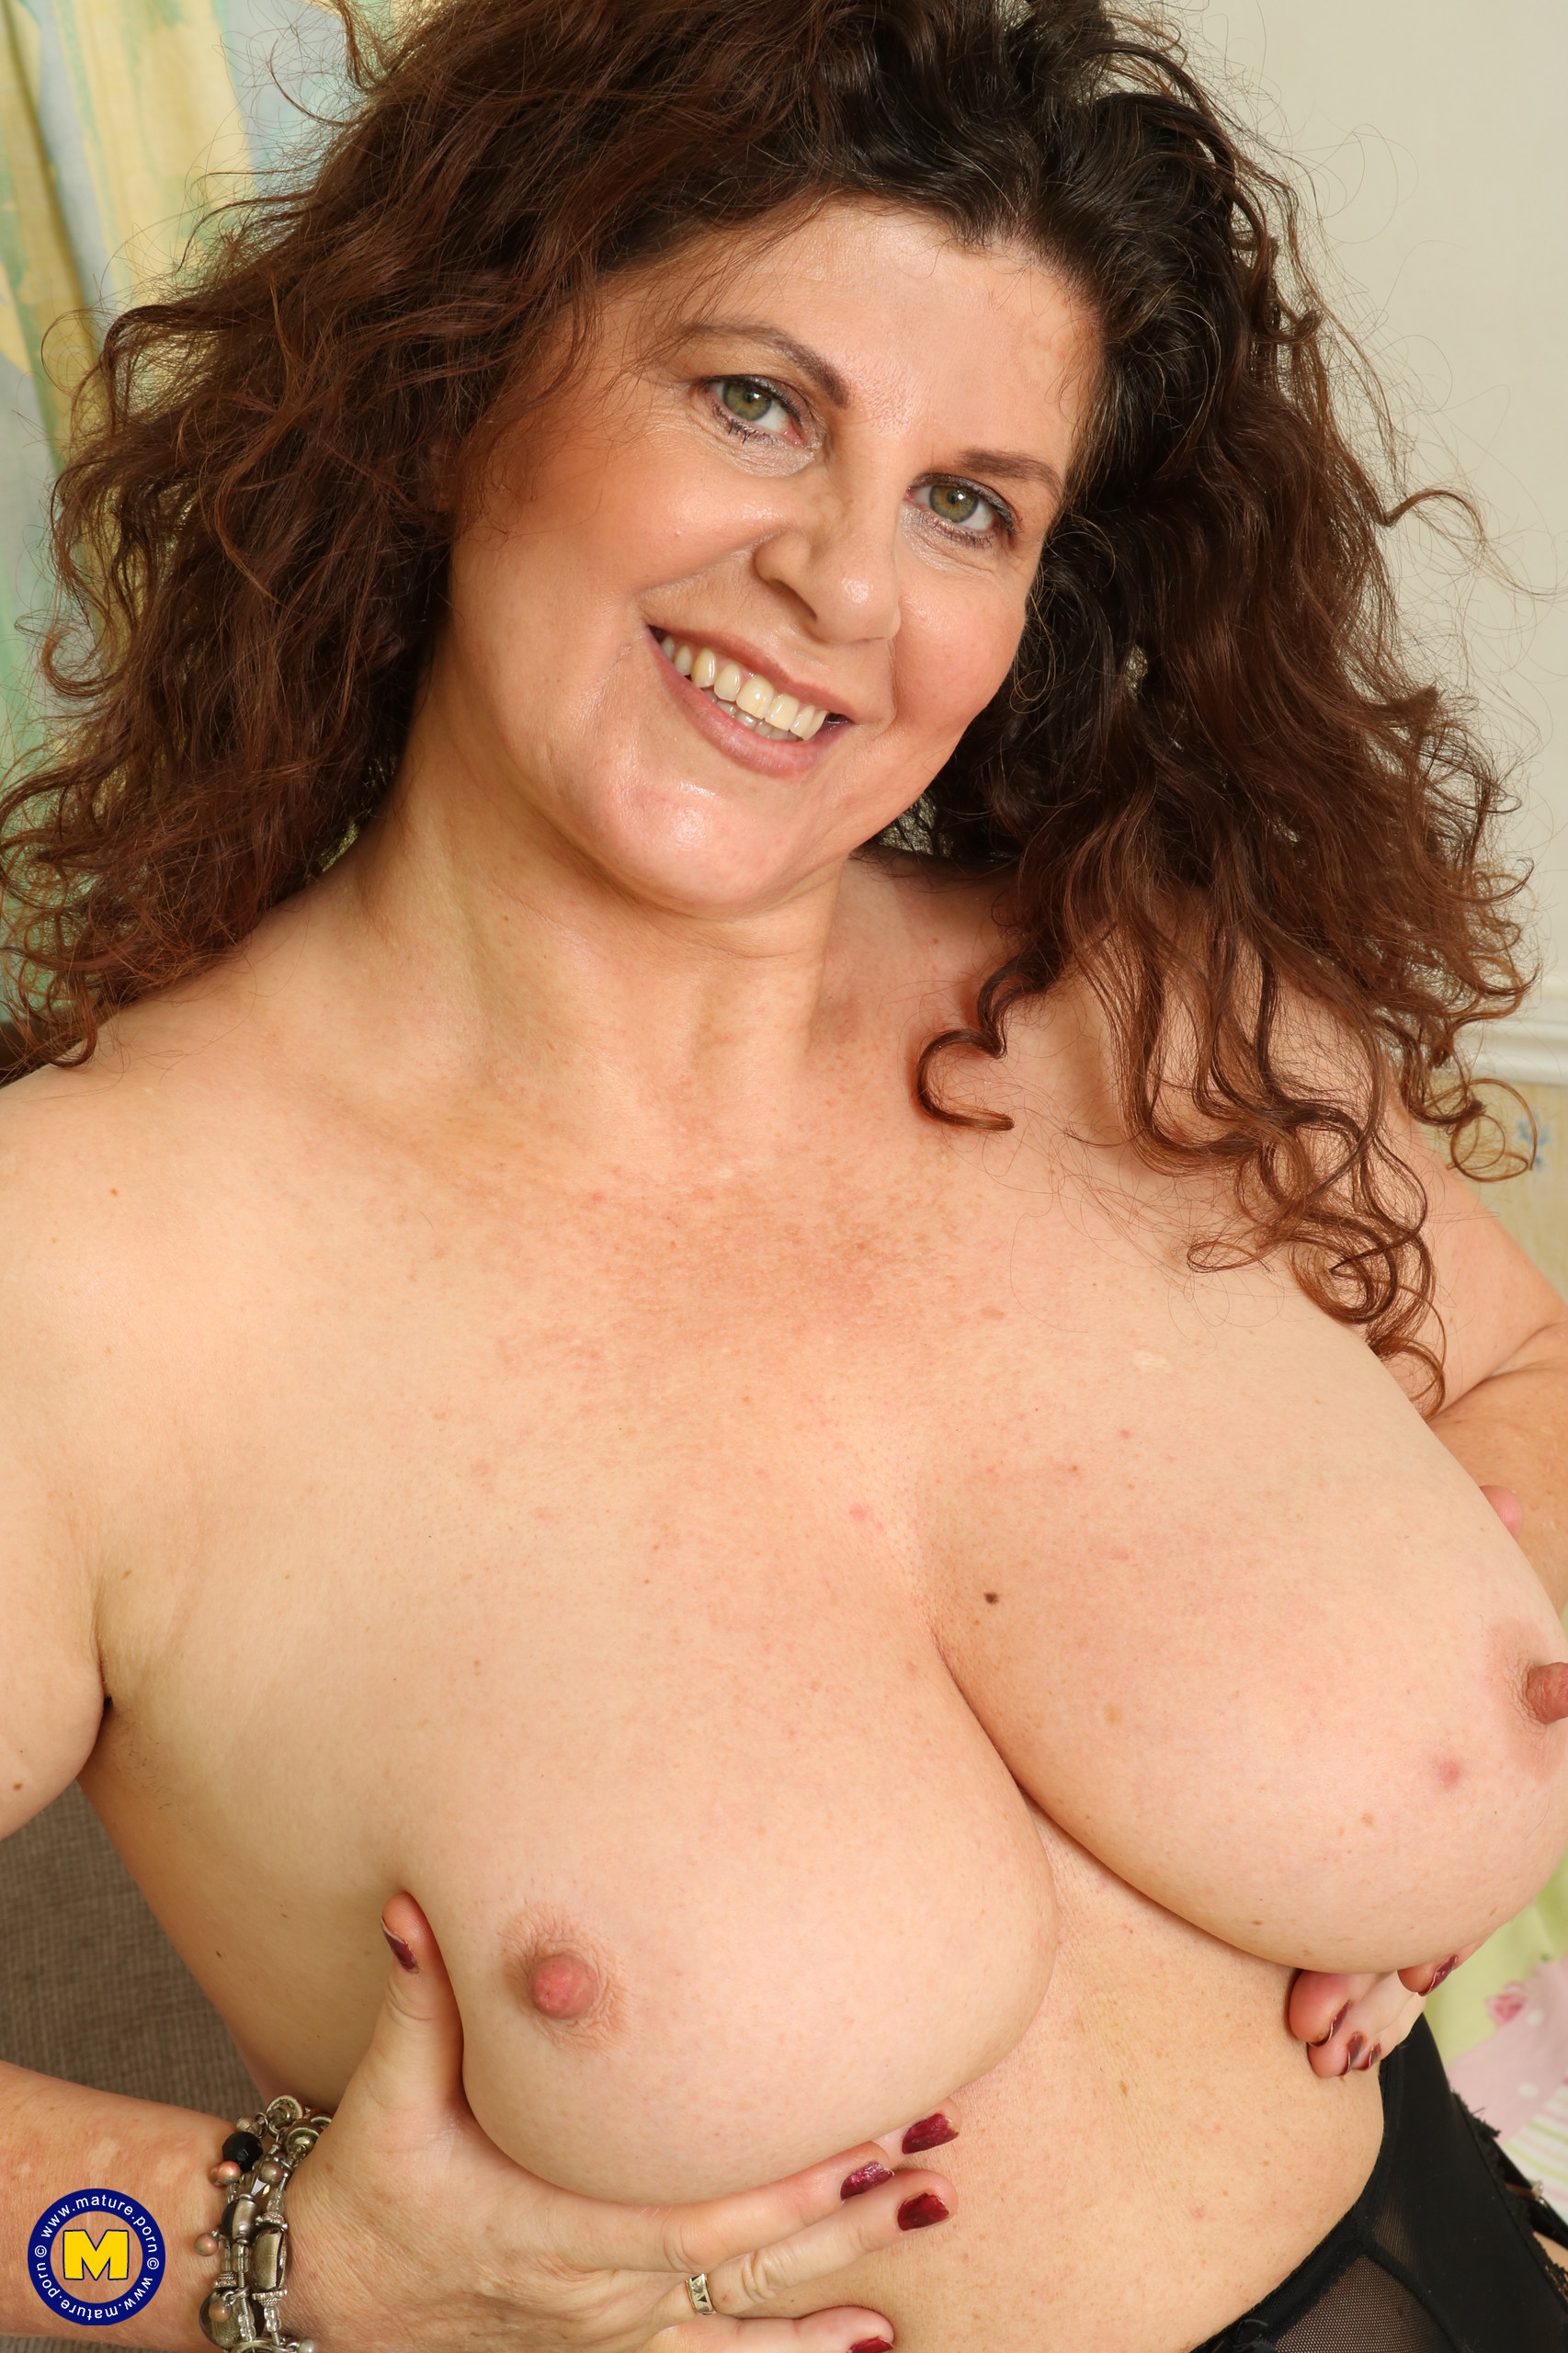 Curvaceous giant breasted Brit housewife finger-tickling herself